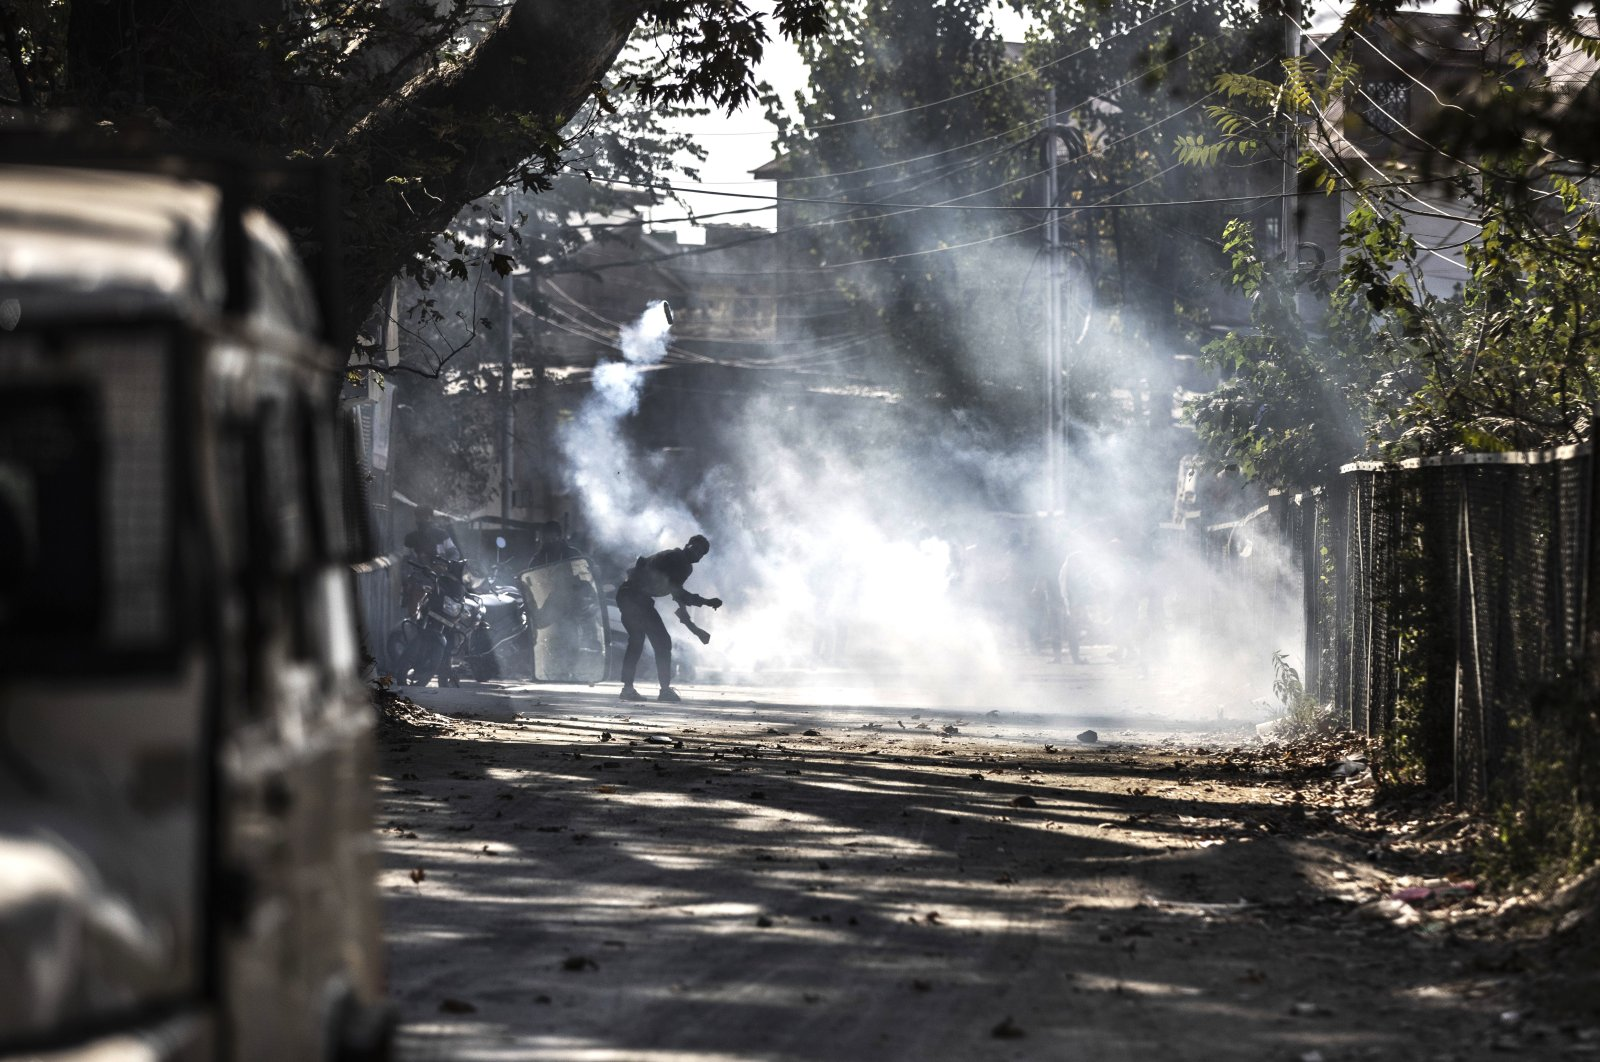 A Kashmiri protester throws an exploded tear smoke shell on Indian forces during a clash following the killing of two suspected rebels in a gunfight with government forces in Srinagar, Kashmir, Oct. 12, 2020. (AP Photo)